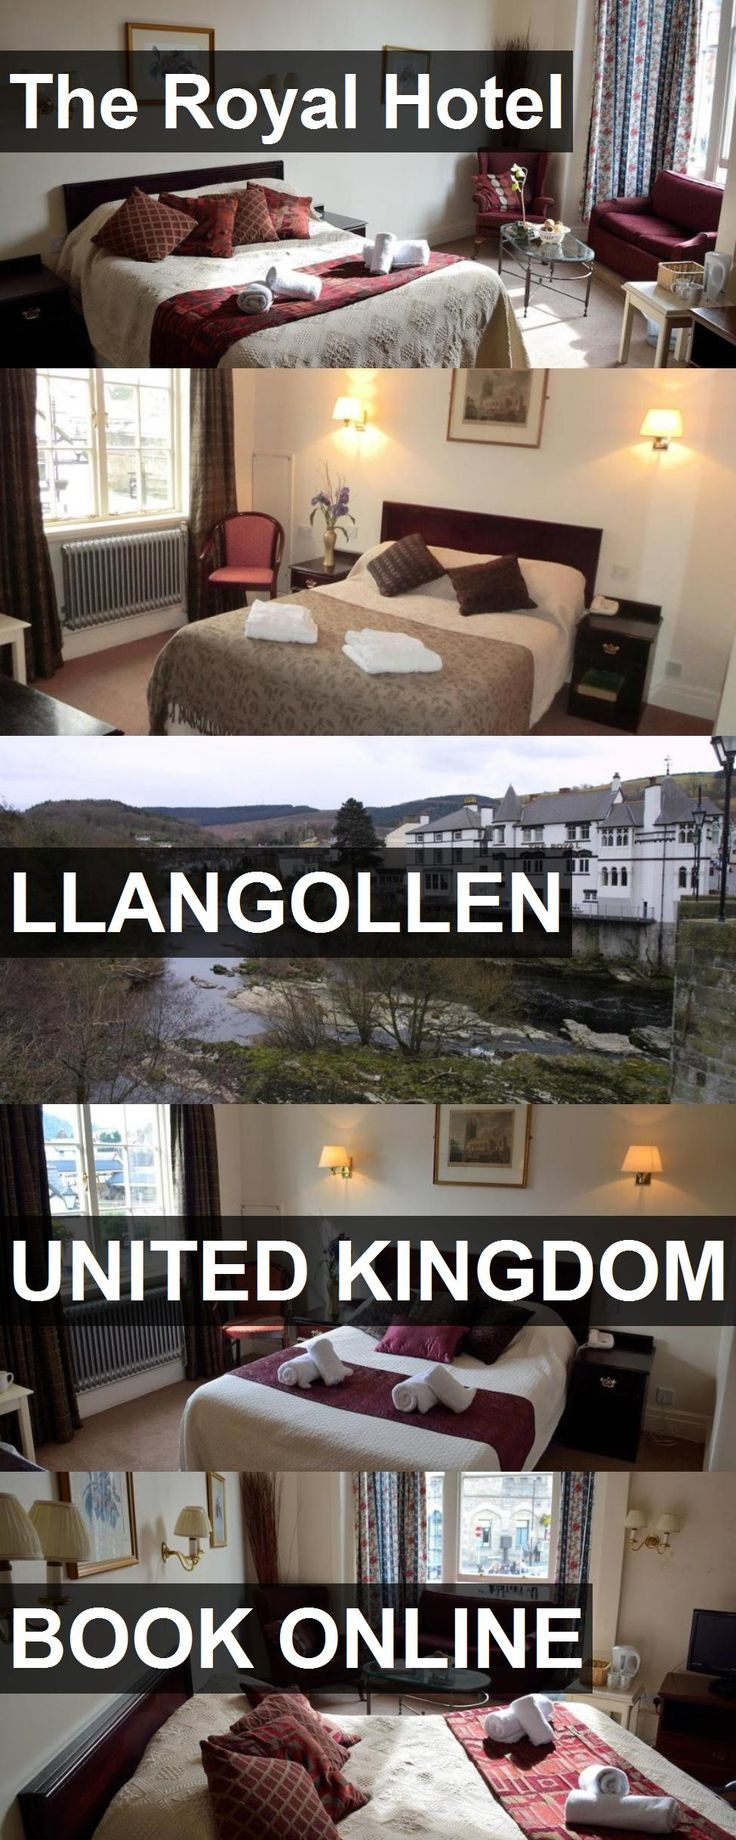 The Royal Hotel in Llangollen, United Kingdom. For more information, photos, reviews and best prices please follow the link. #UnitedKingdom #Llangollen #travel #vacation #hotel